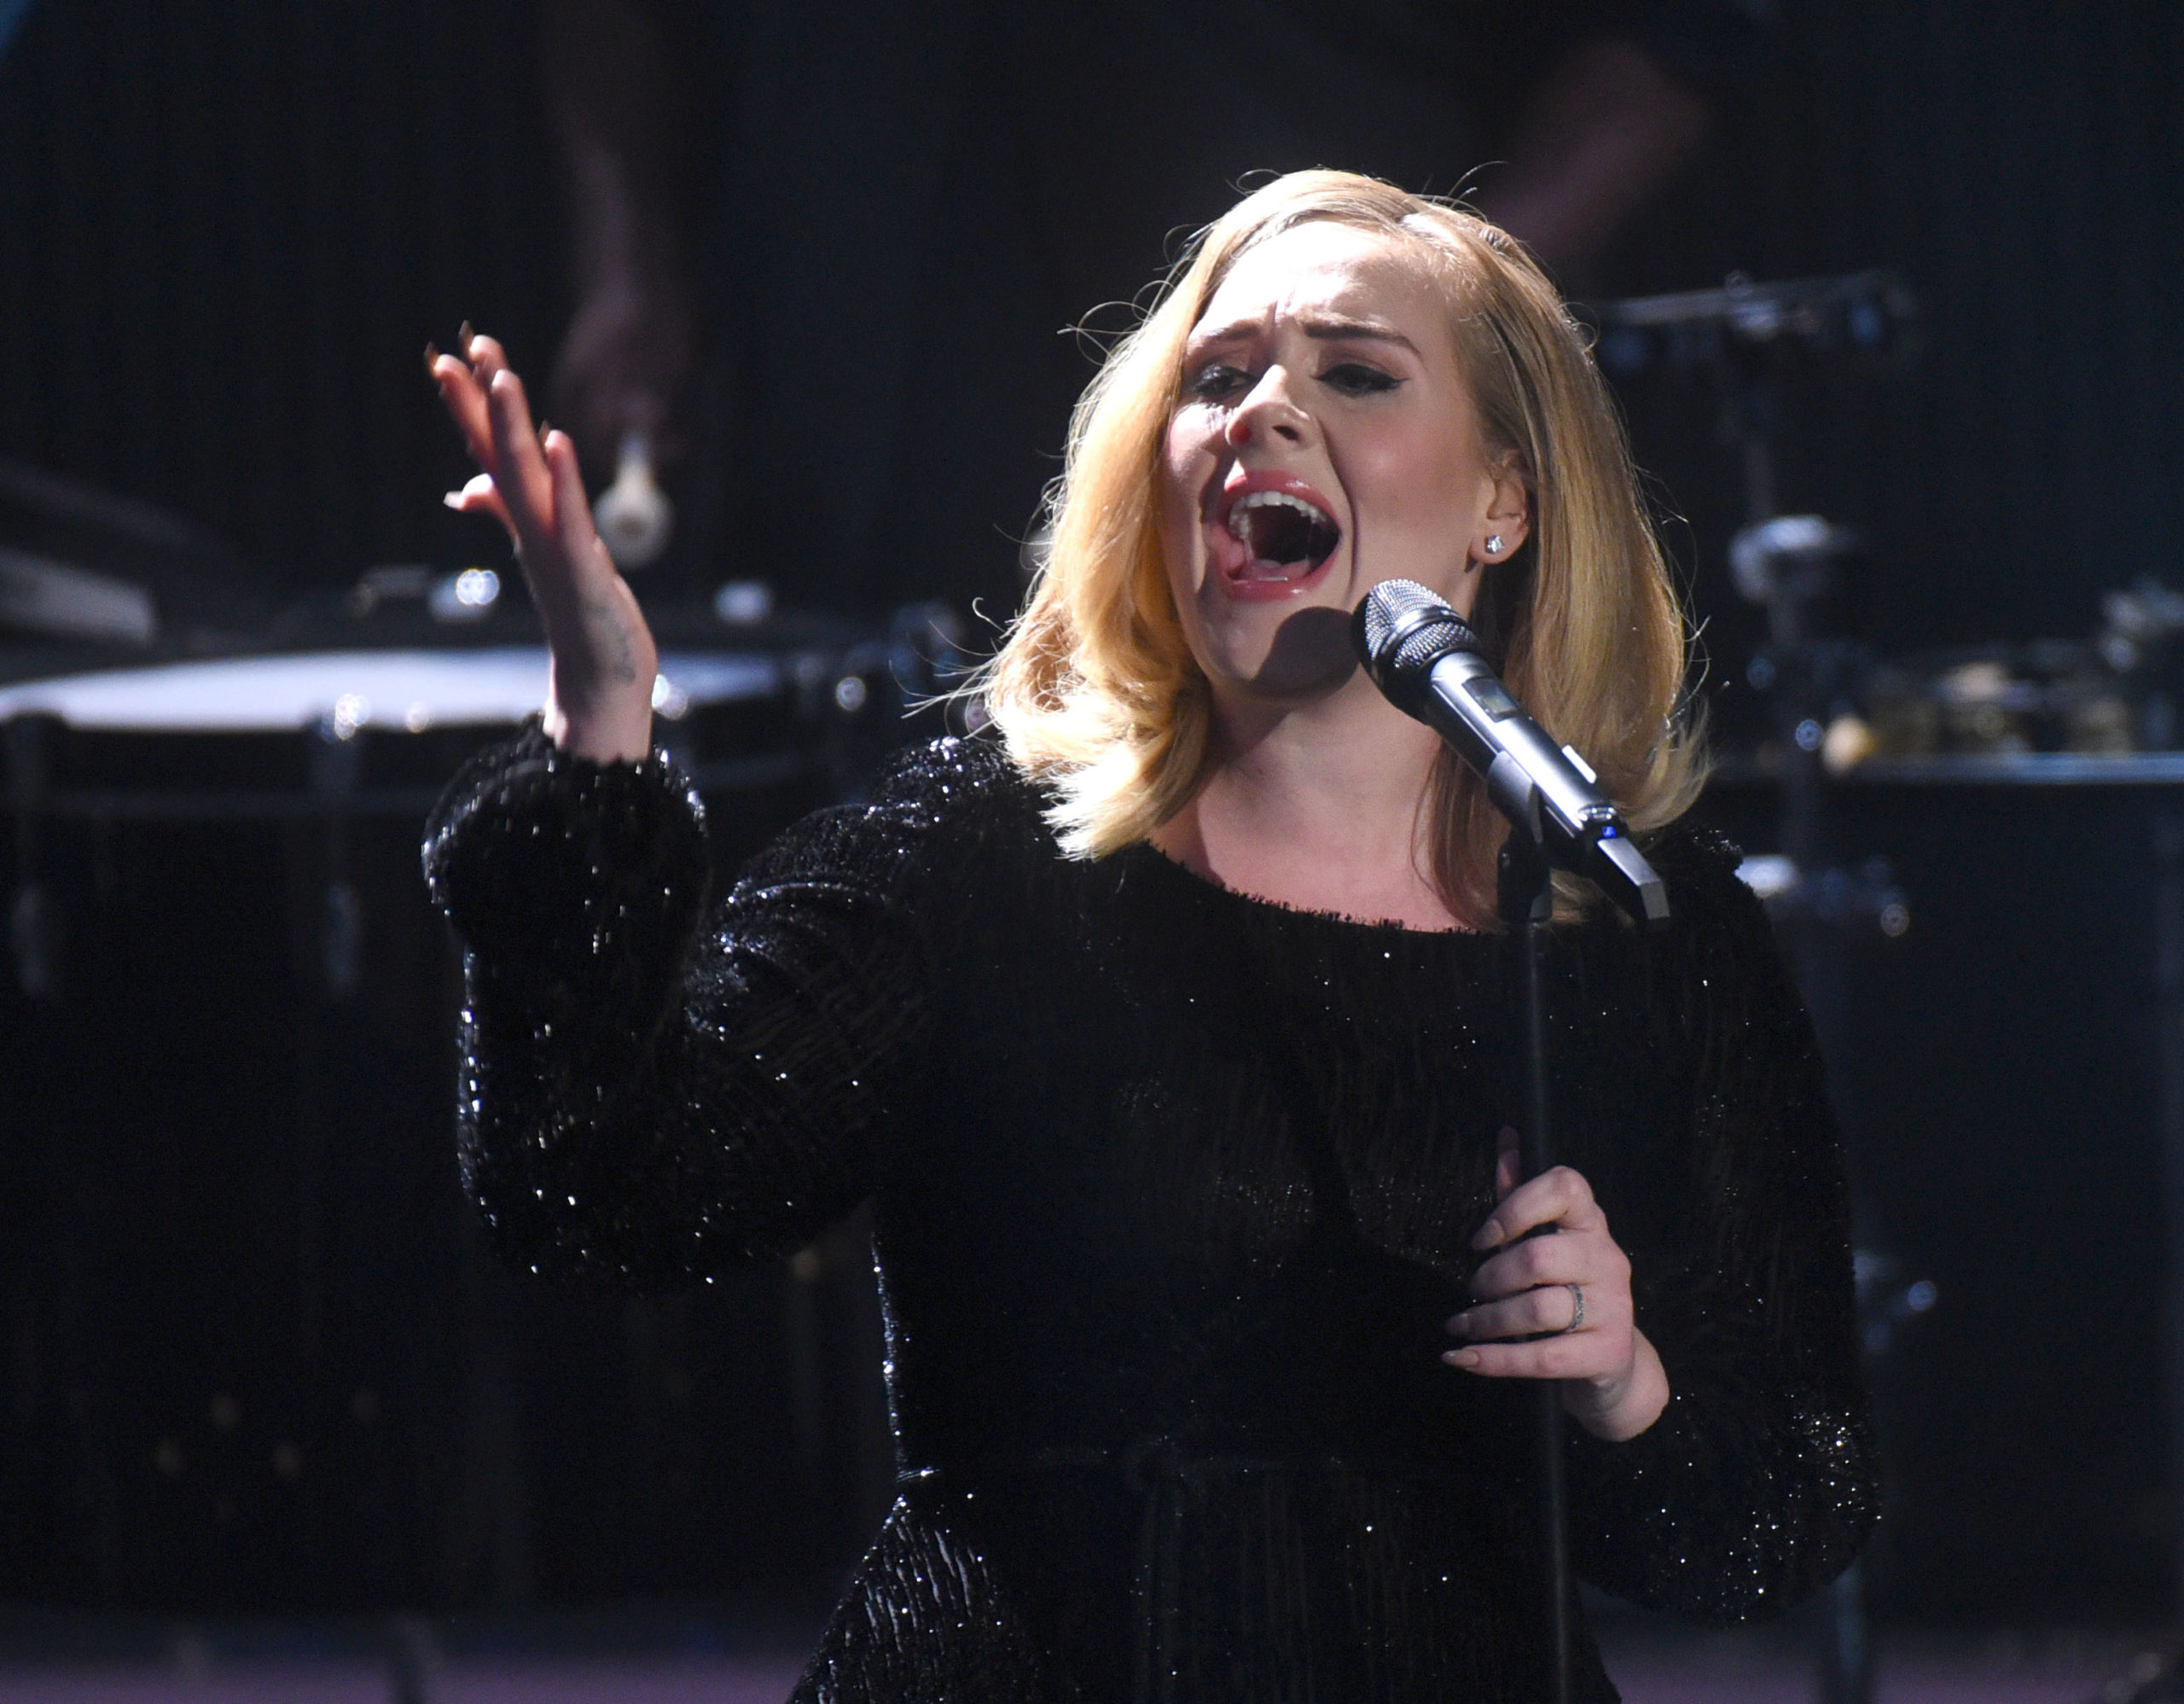 Adele has grabbed headlines for her recent weight loss